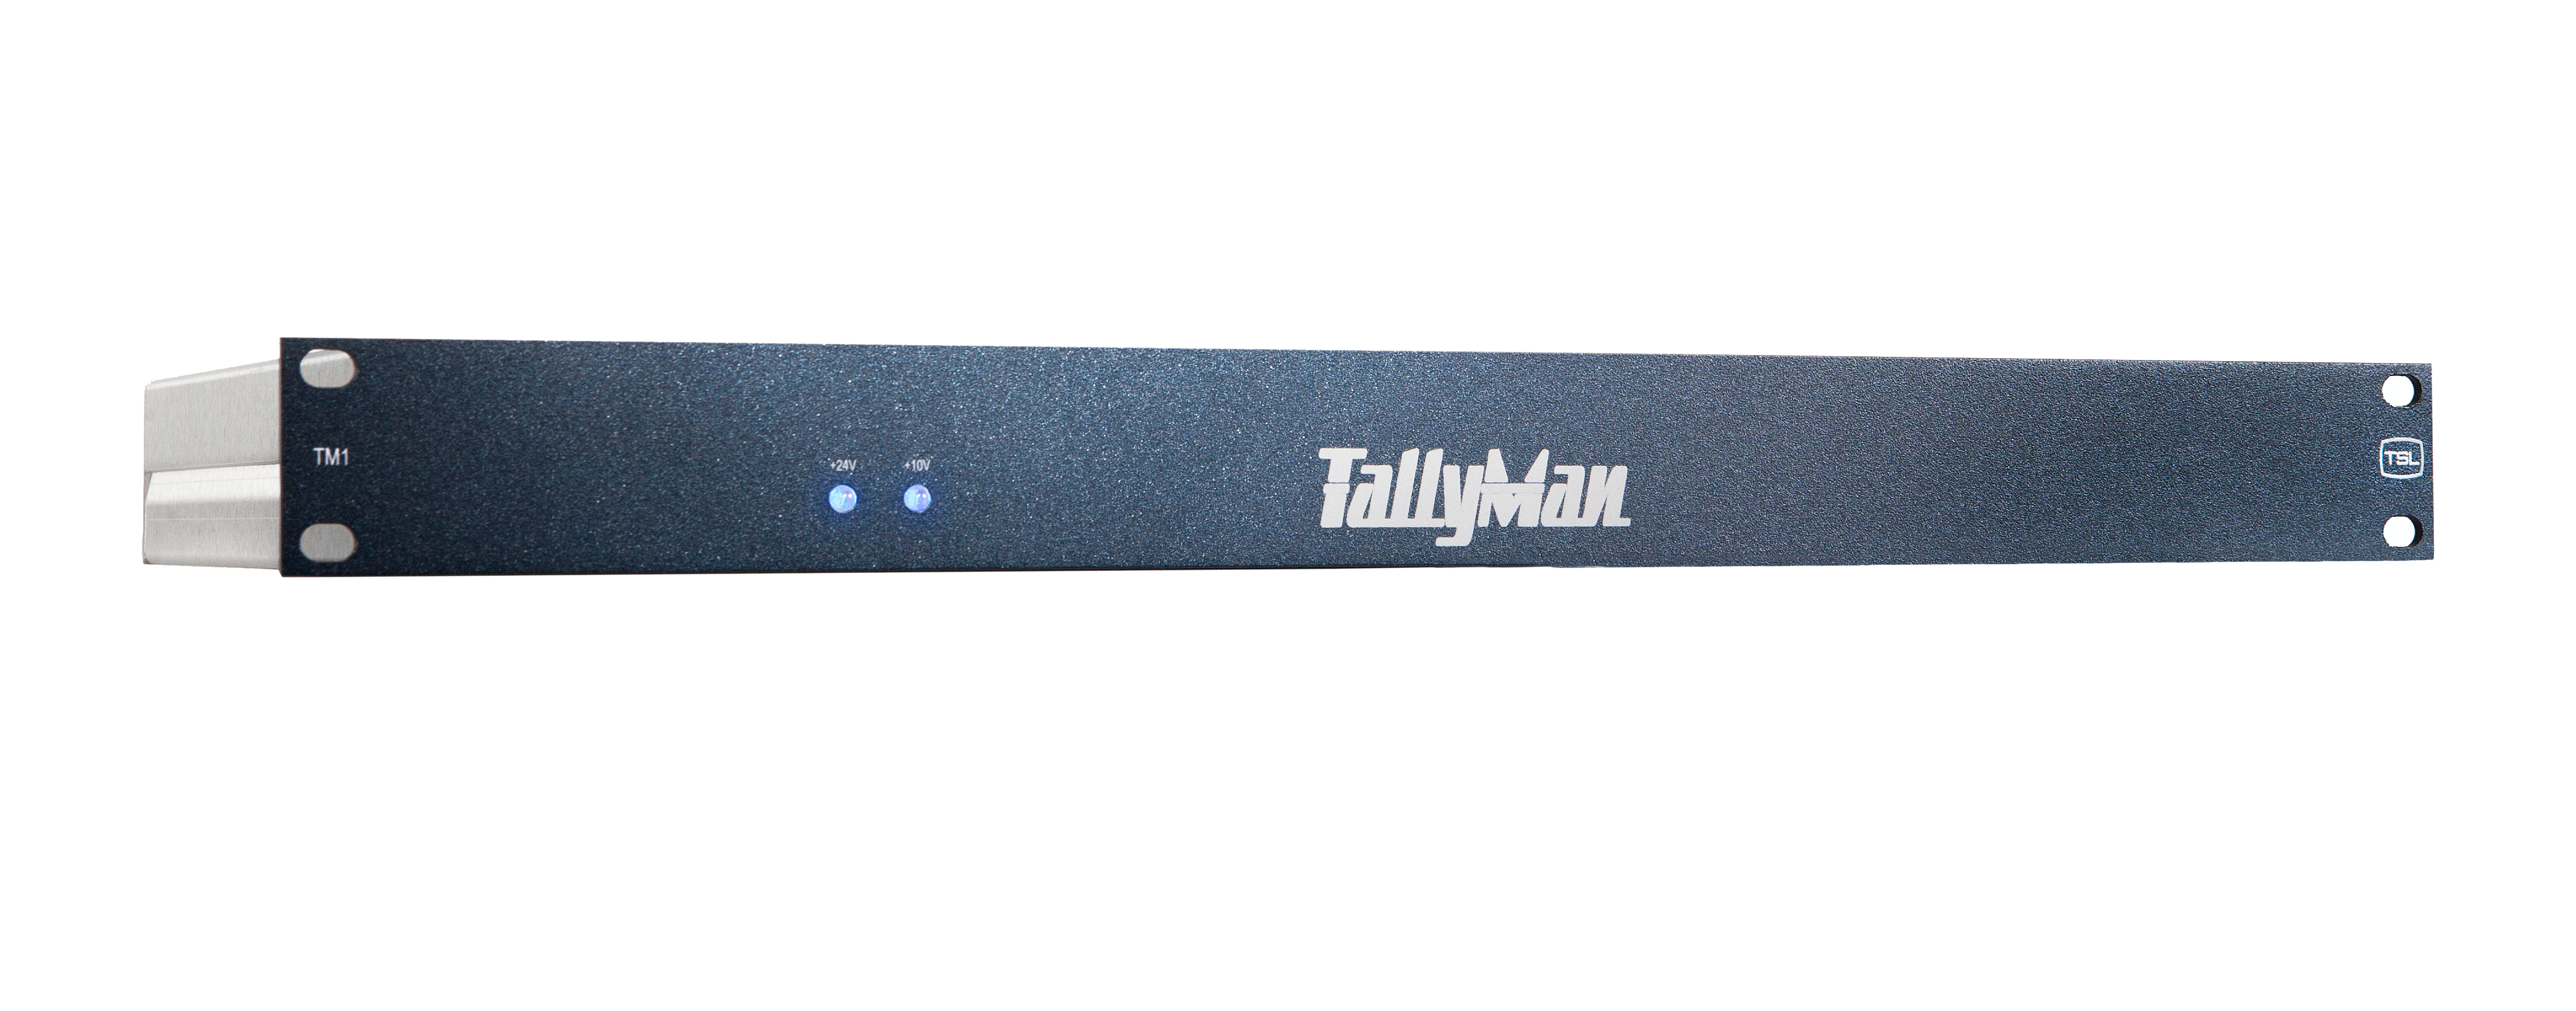 Tallyman Advanced Broadcast Control System